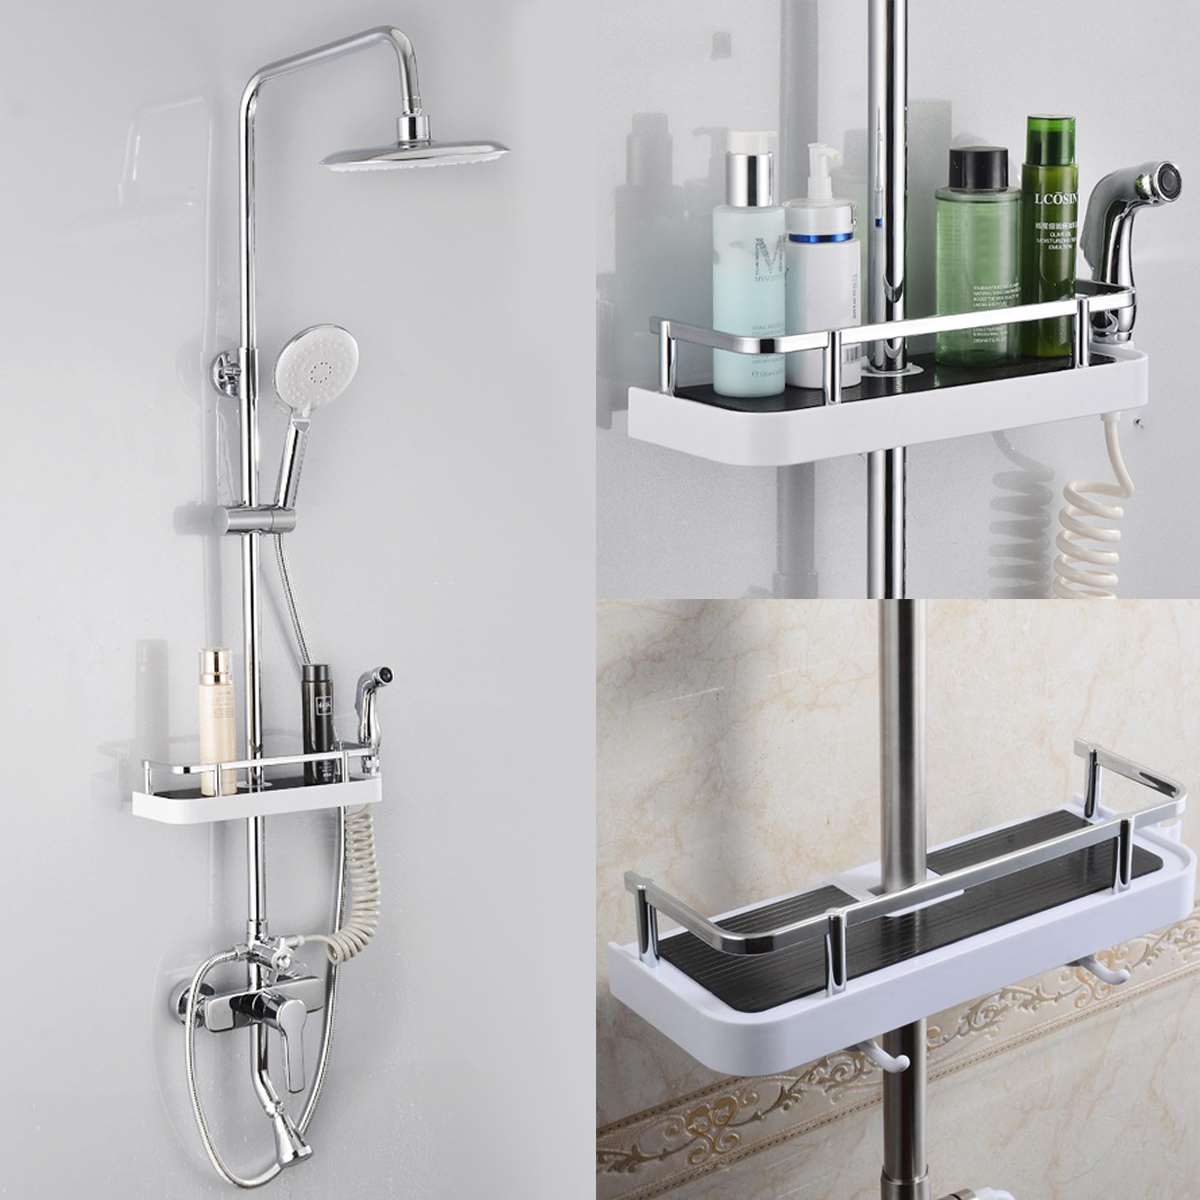 Stainless Steel Rectangle Bathroom Organizer Shower Shelves Storage Rack Holder Shampoo Tray Bathroom  Single Tier  Head Holder